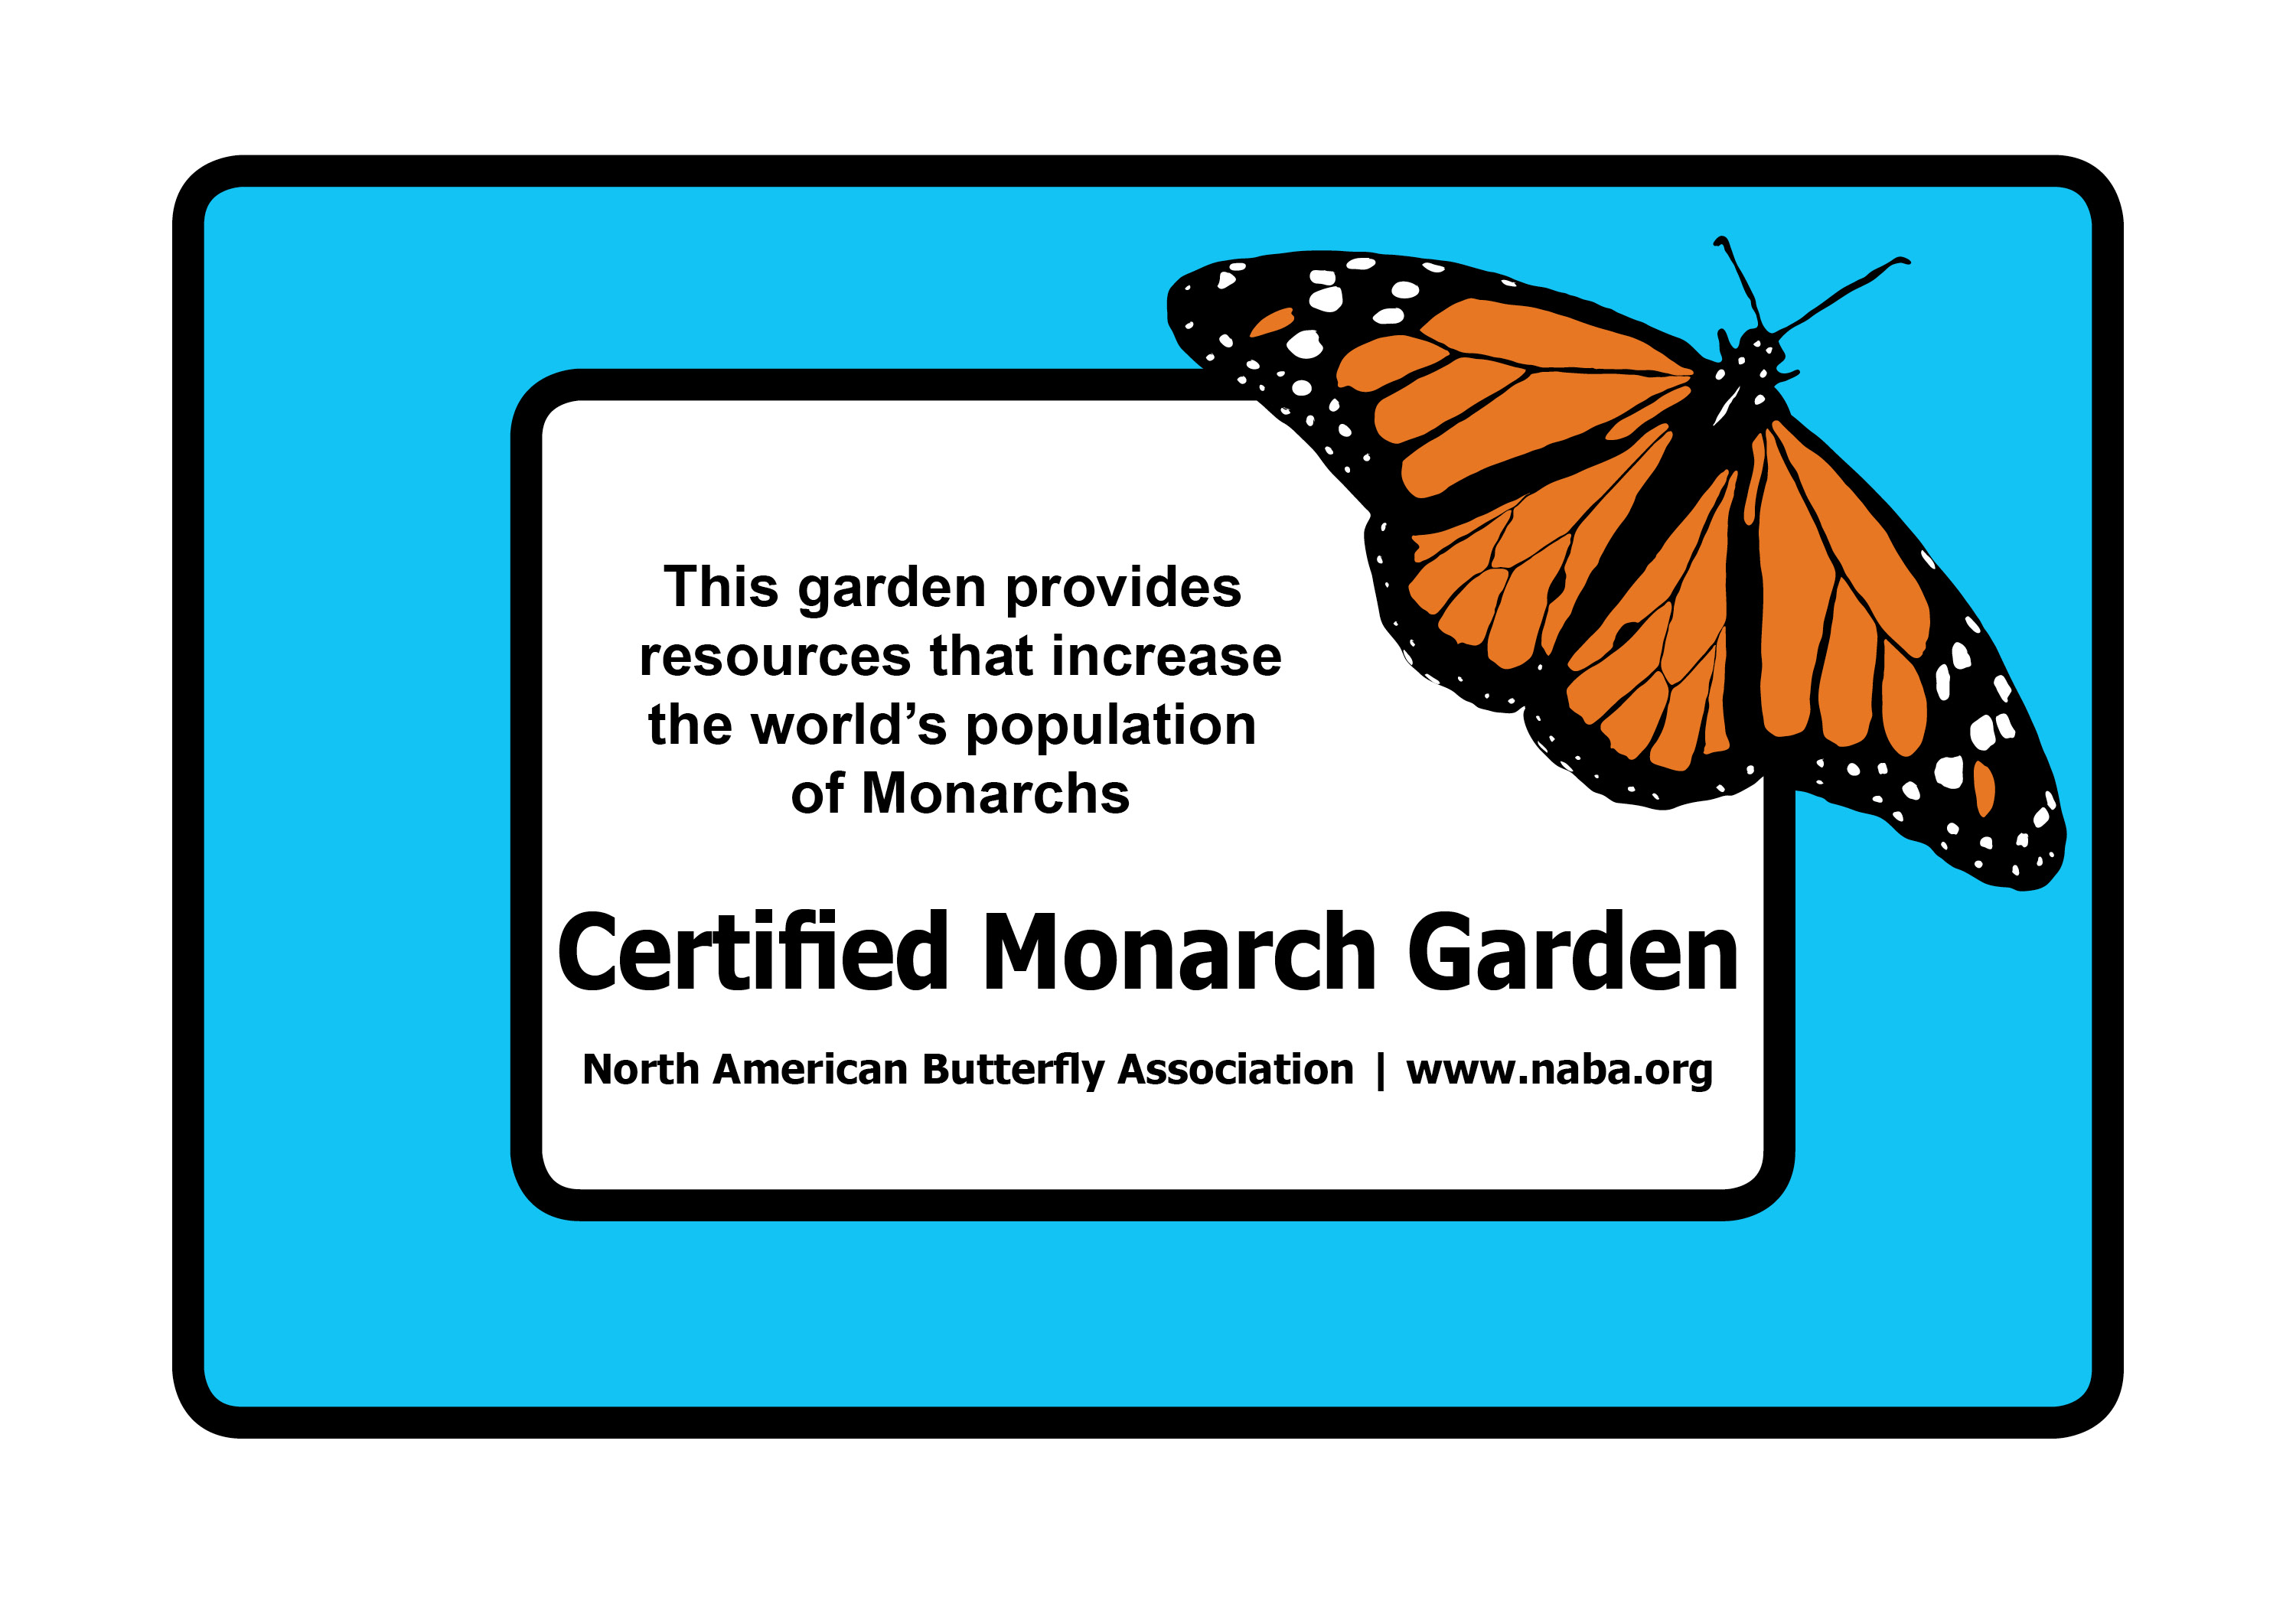 NABA Certified Butterfly Gardeners May Purchase An Outdoor, Weatherproof  Certification Sign With A Monarch Image